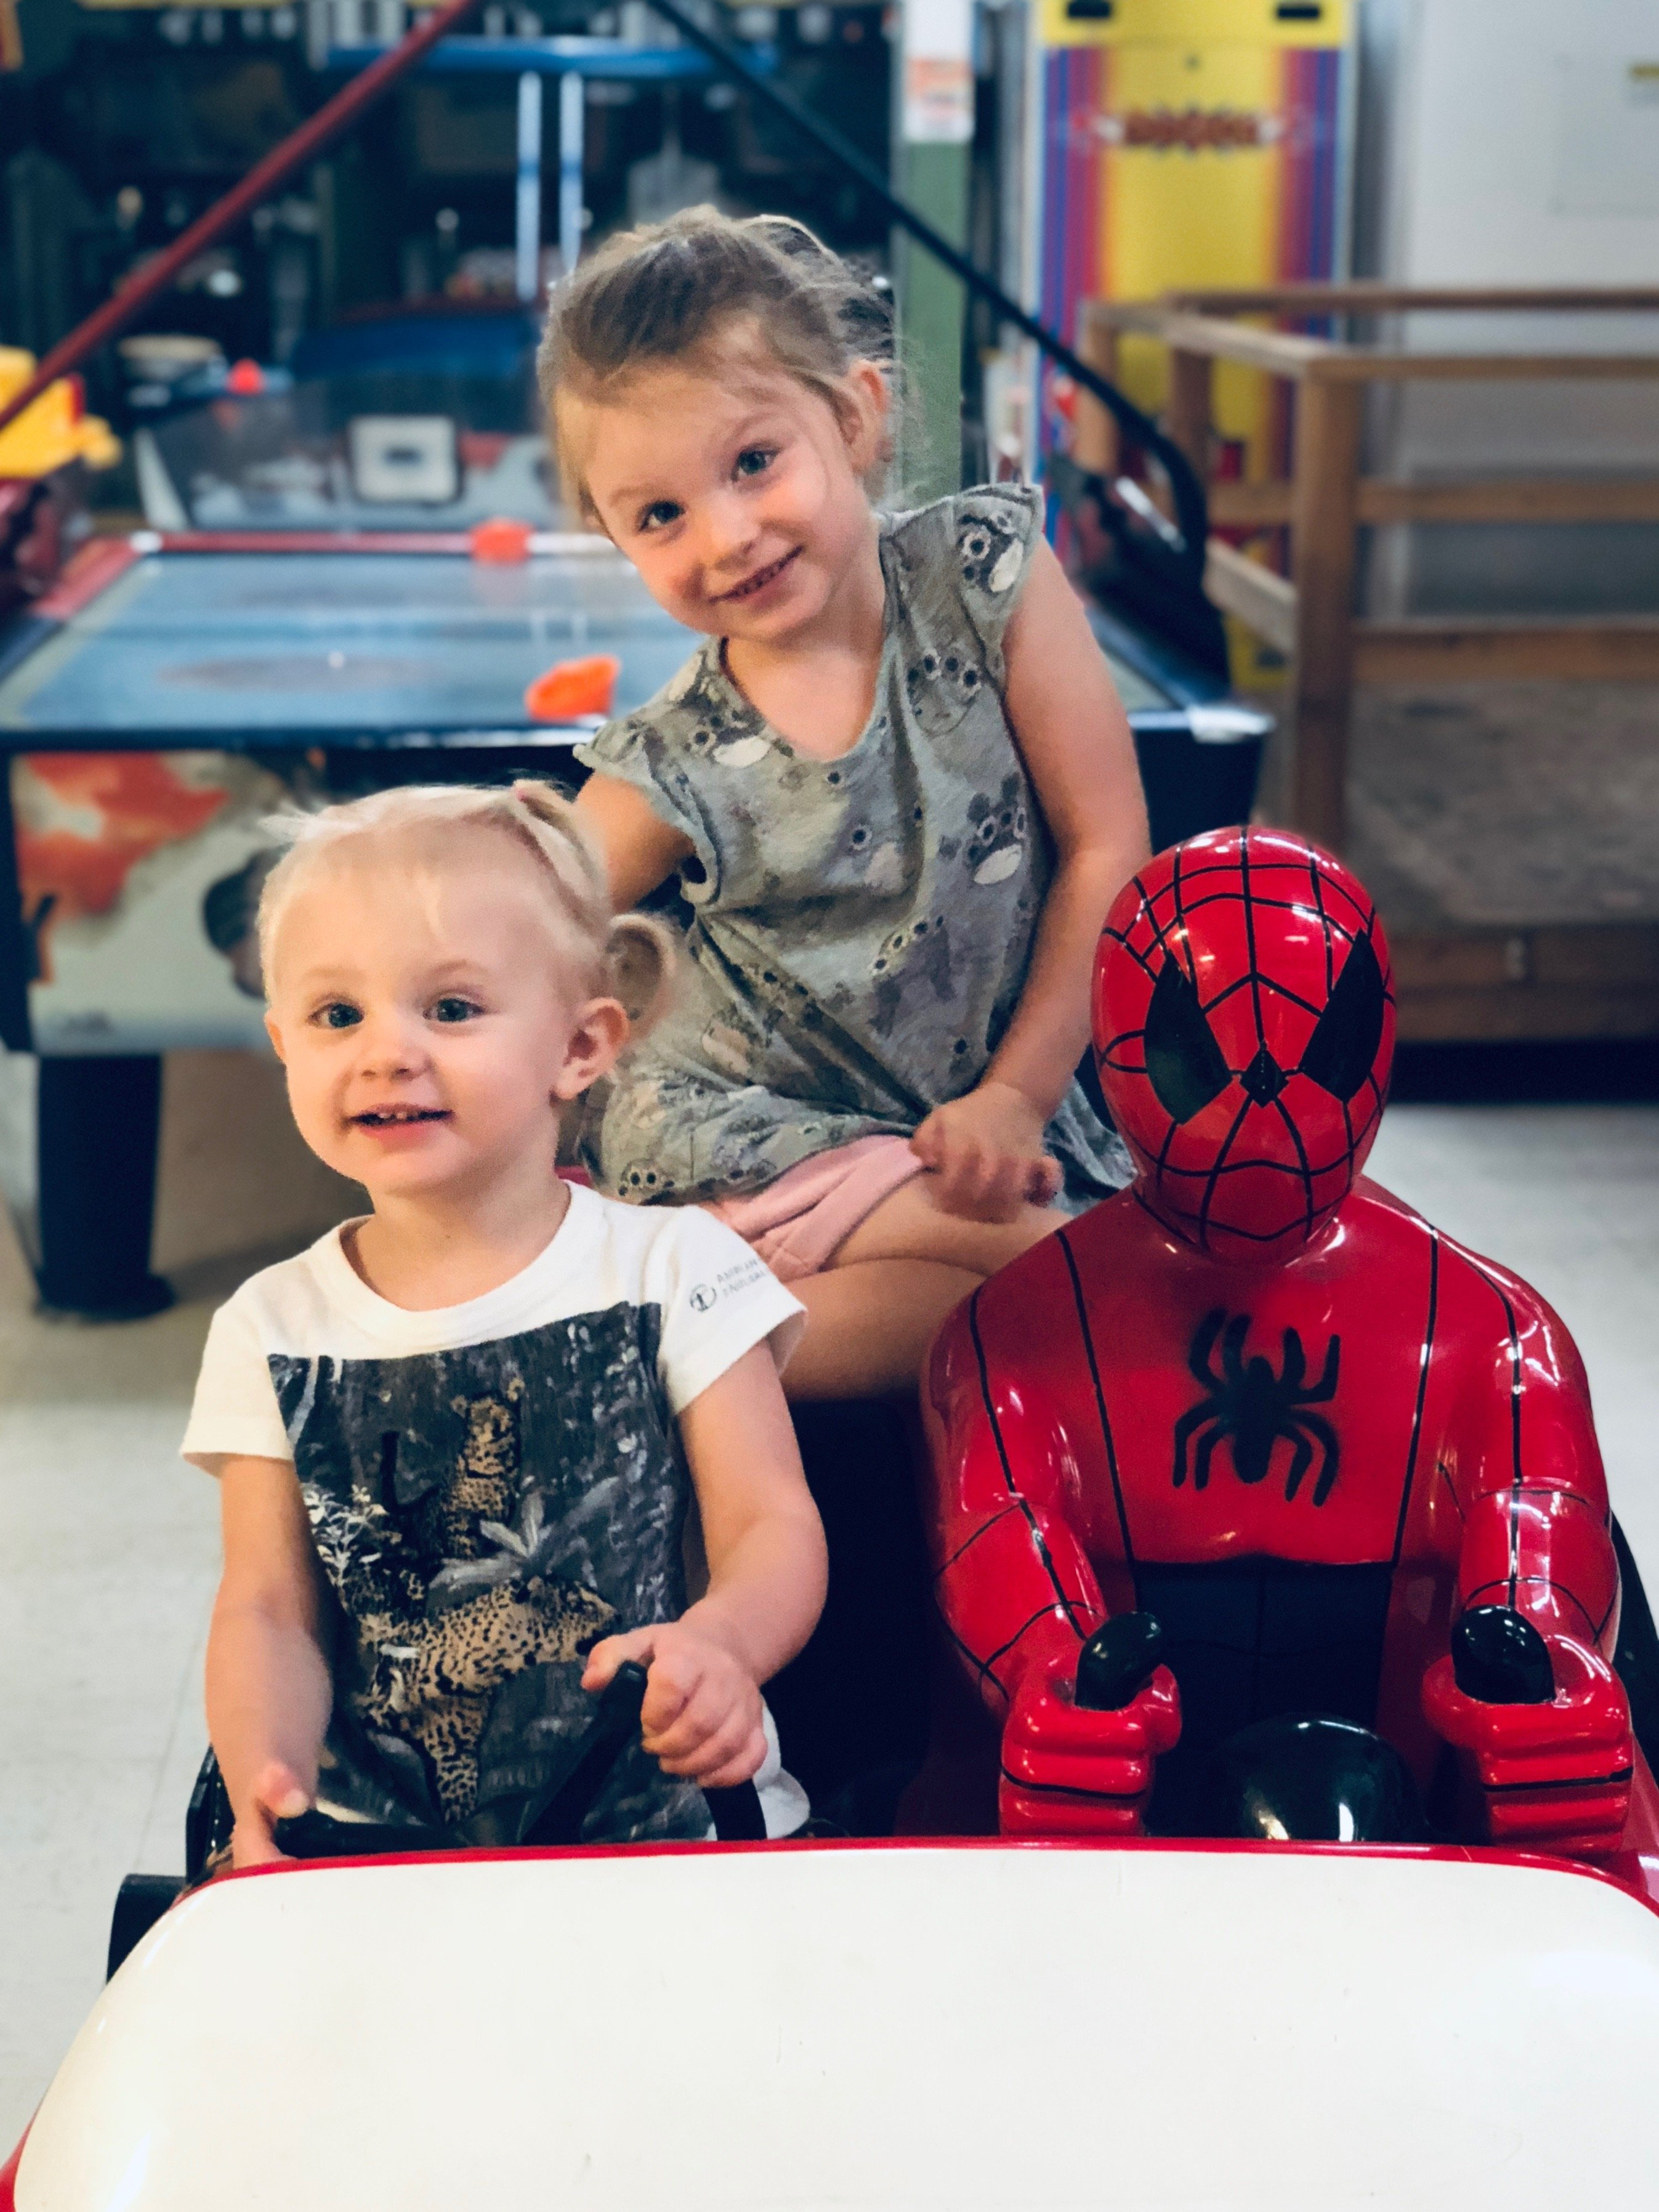 The girls, Nevey and Astrid, with Spidey